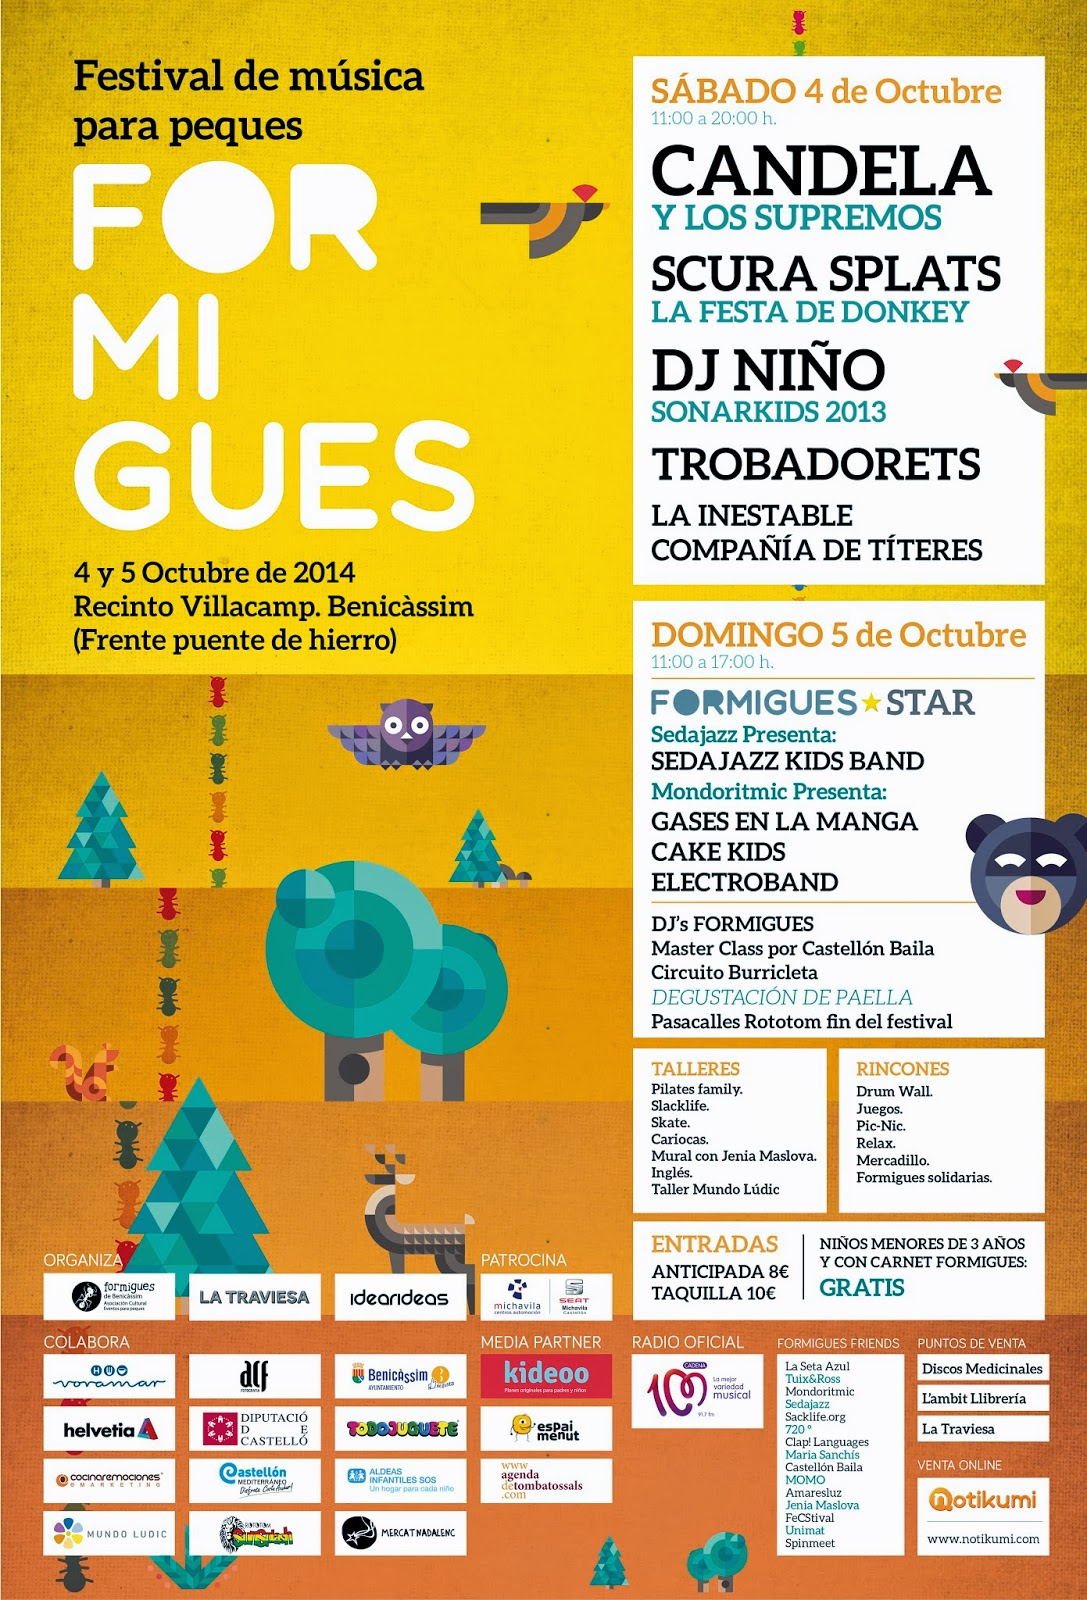 aniwiki formigues festival